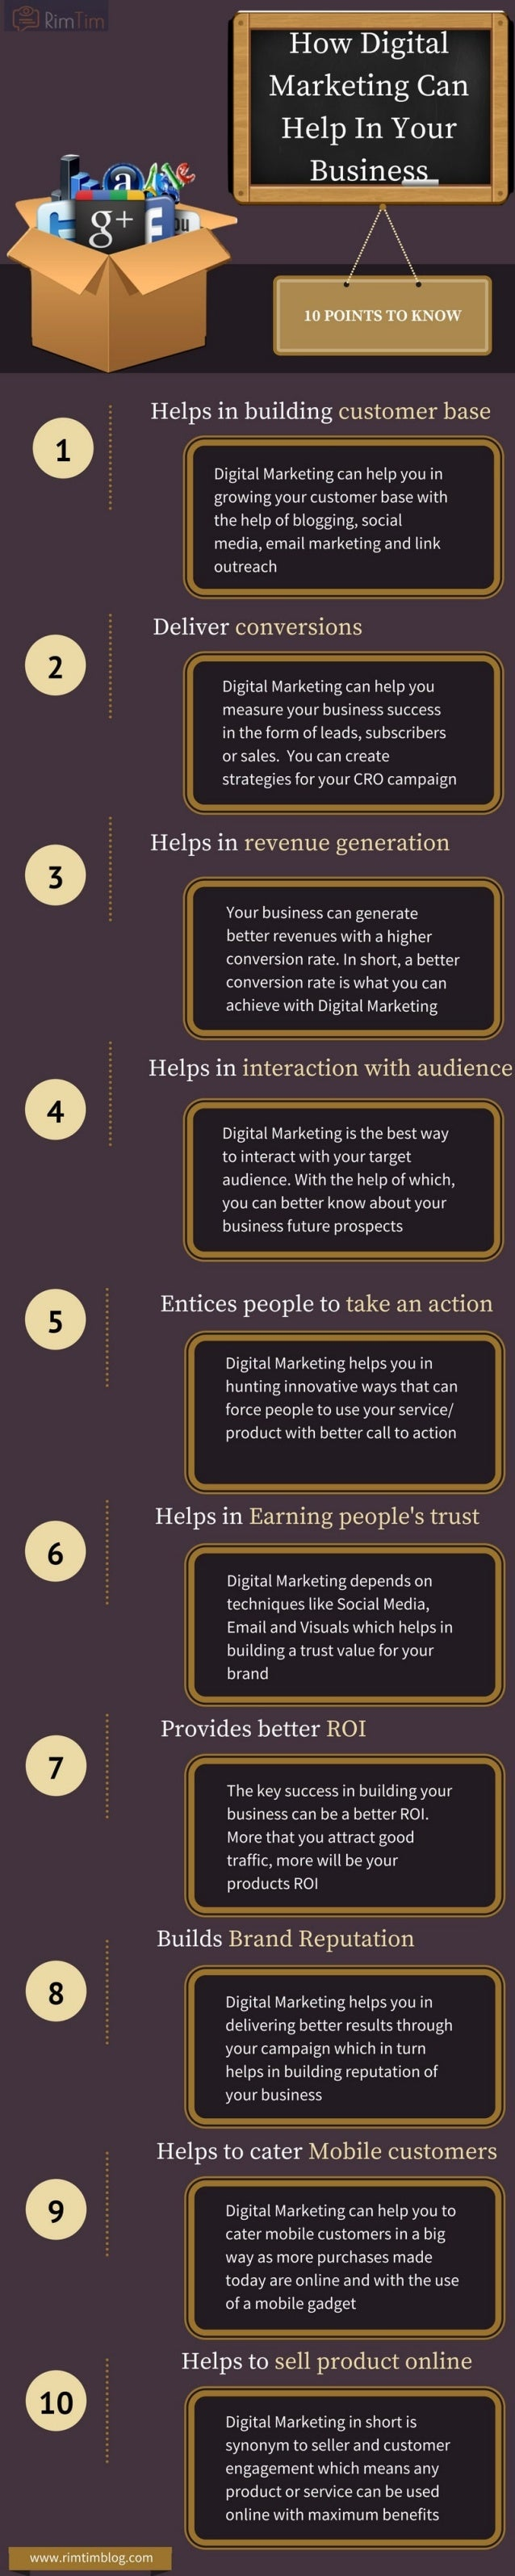 How digital marketing helps in your business